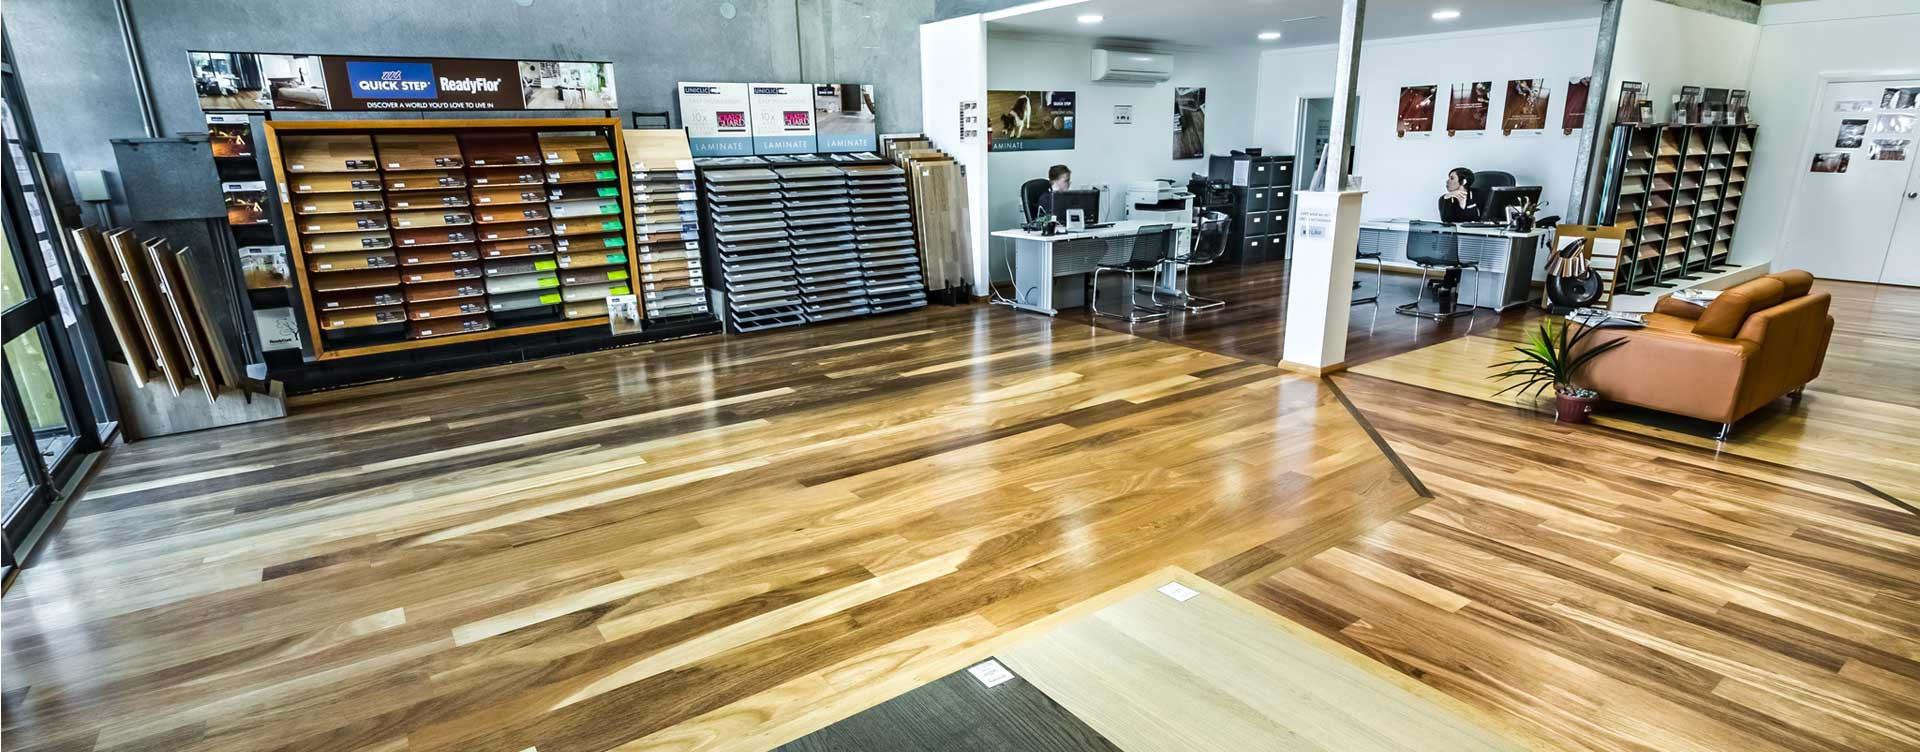 how do you install hardwood floors on concrete of timber flooring perth coastal flooring wa quality wooden inside thats why they call us the home of fine wood floors